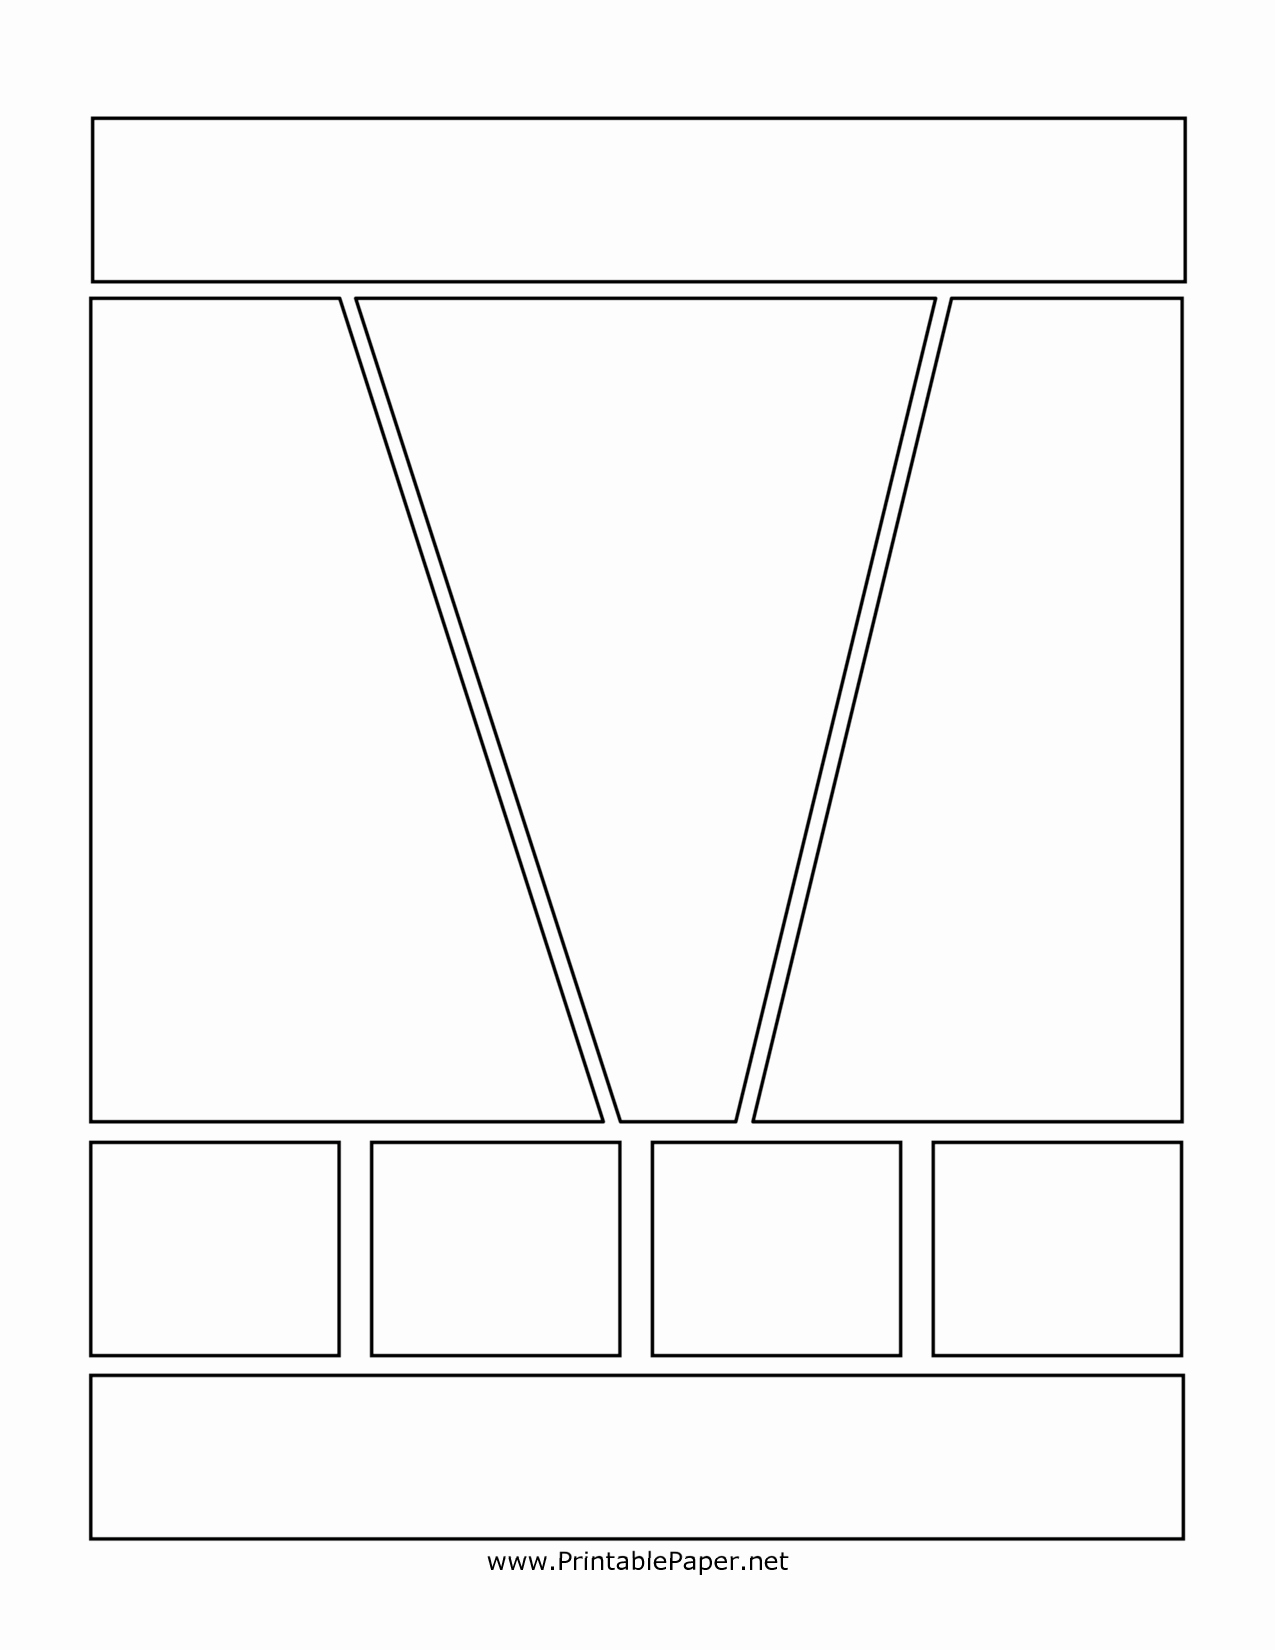 Comic Book Template Pdf Elegant 7 Best Of Printable Ic Book Layout Template